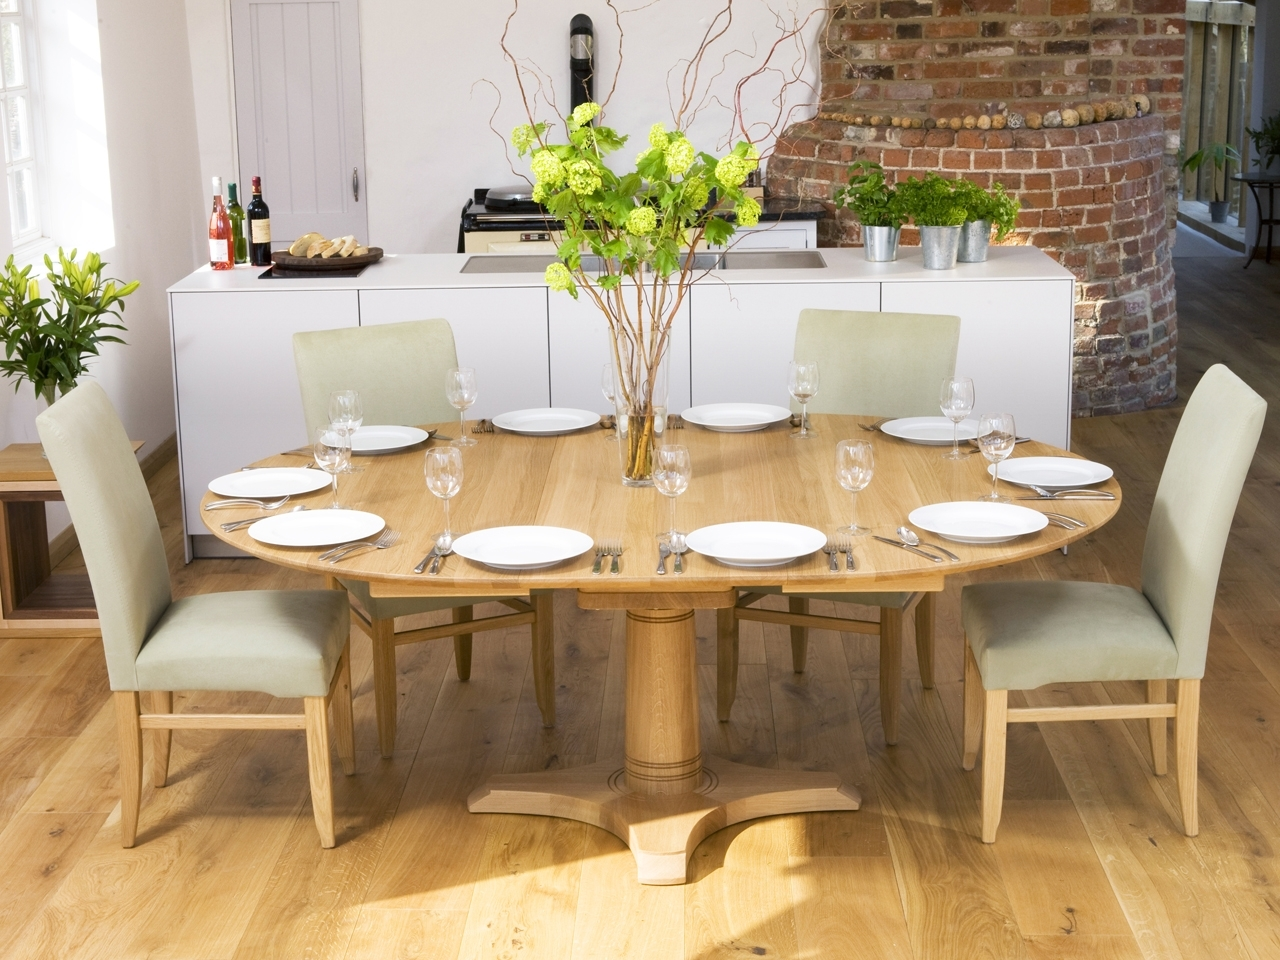 Berrydesign And The Ideal Home Show With Regard To Most Up To Date Extending Round Dining Tables (View 2 of 25)